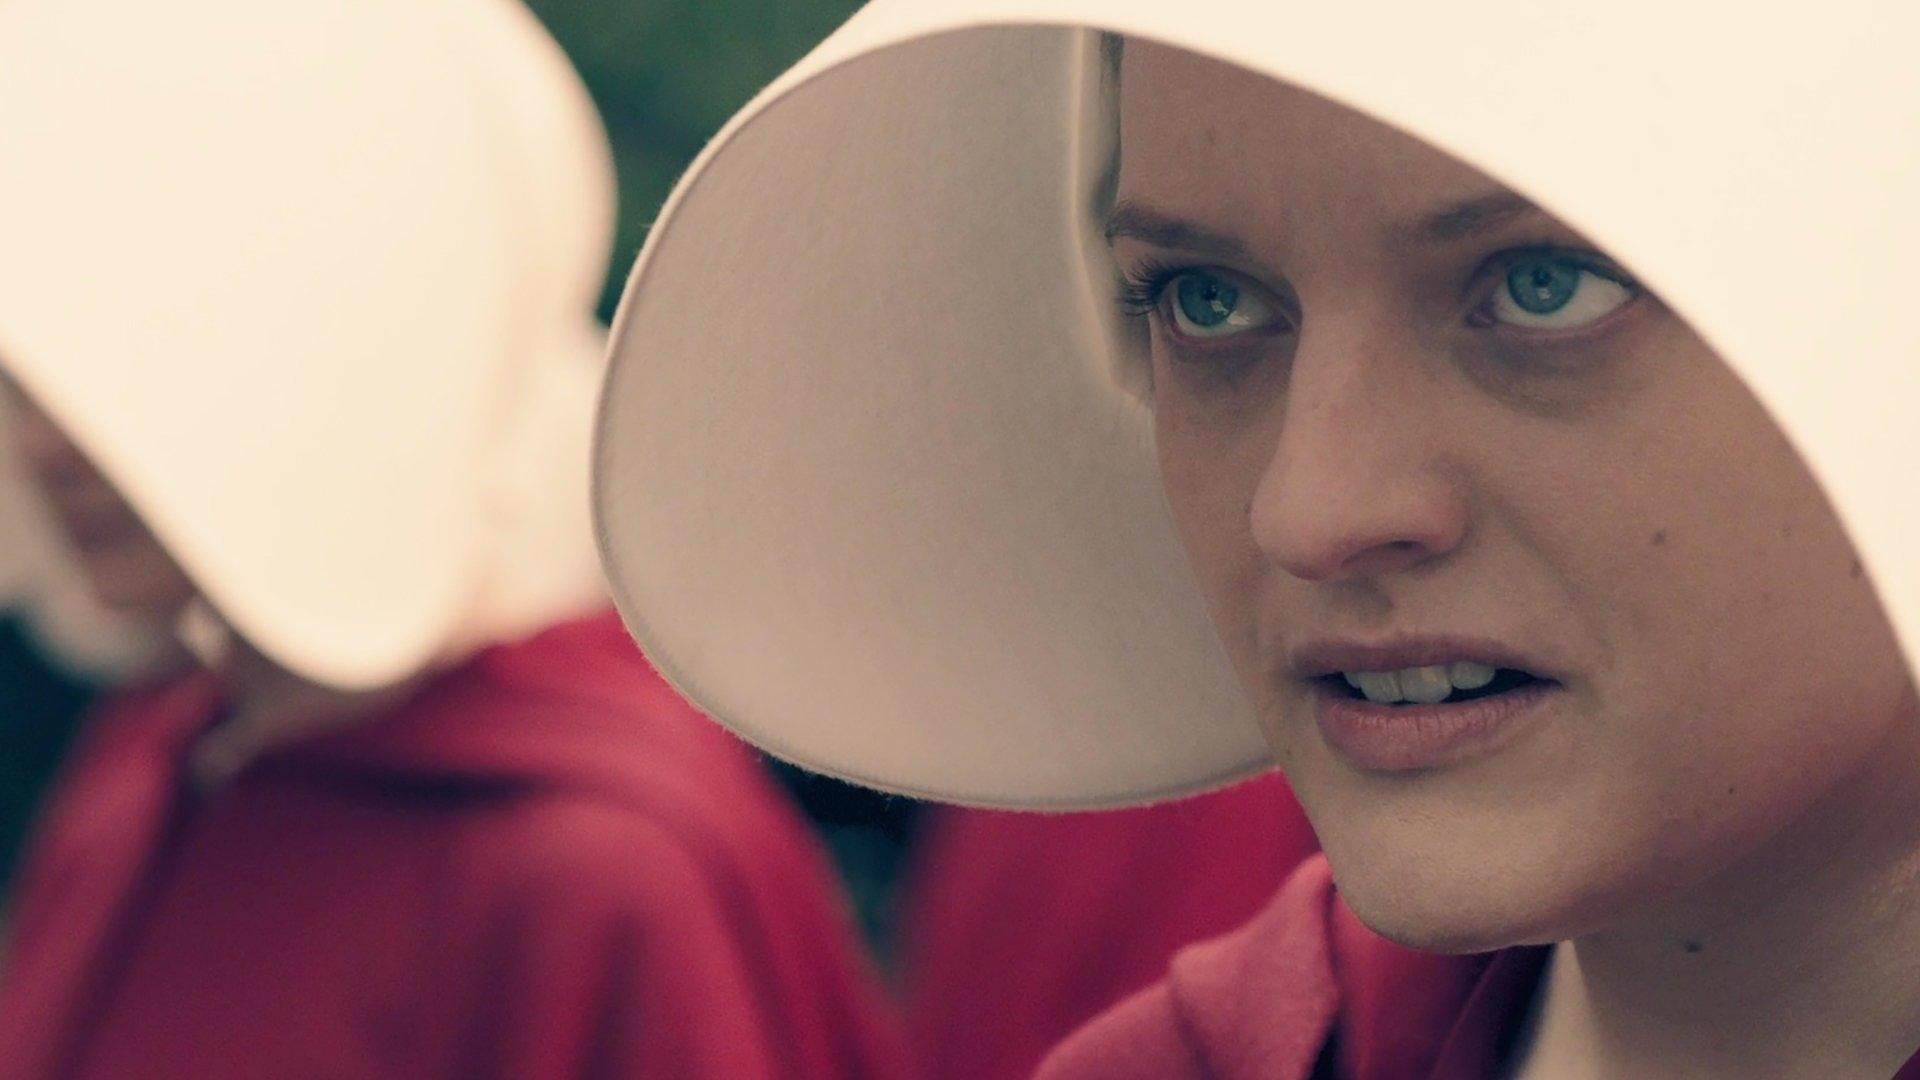 The Handmaid's Tale - Season 3 Episode 12